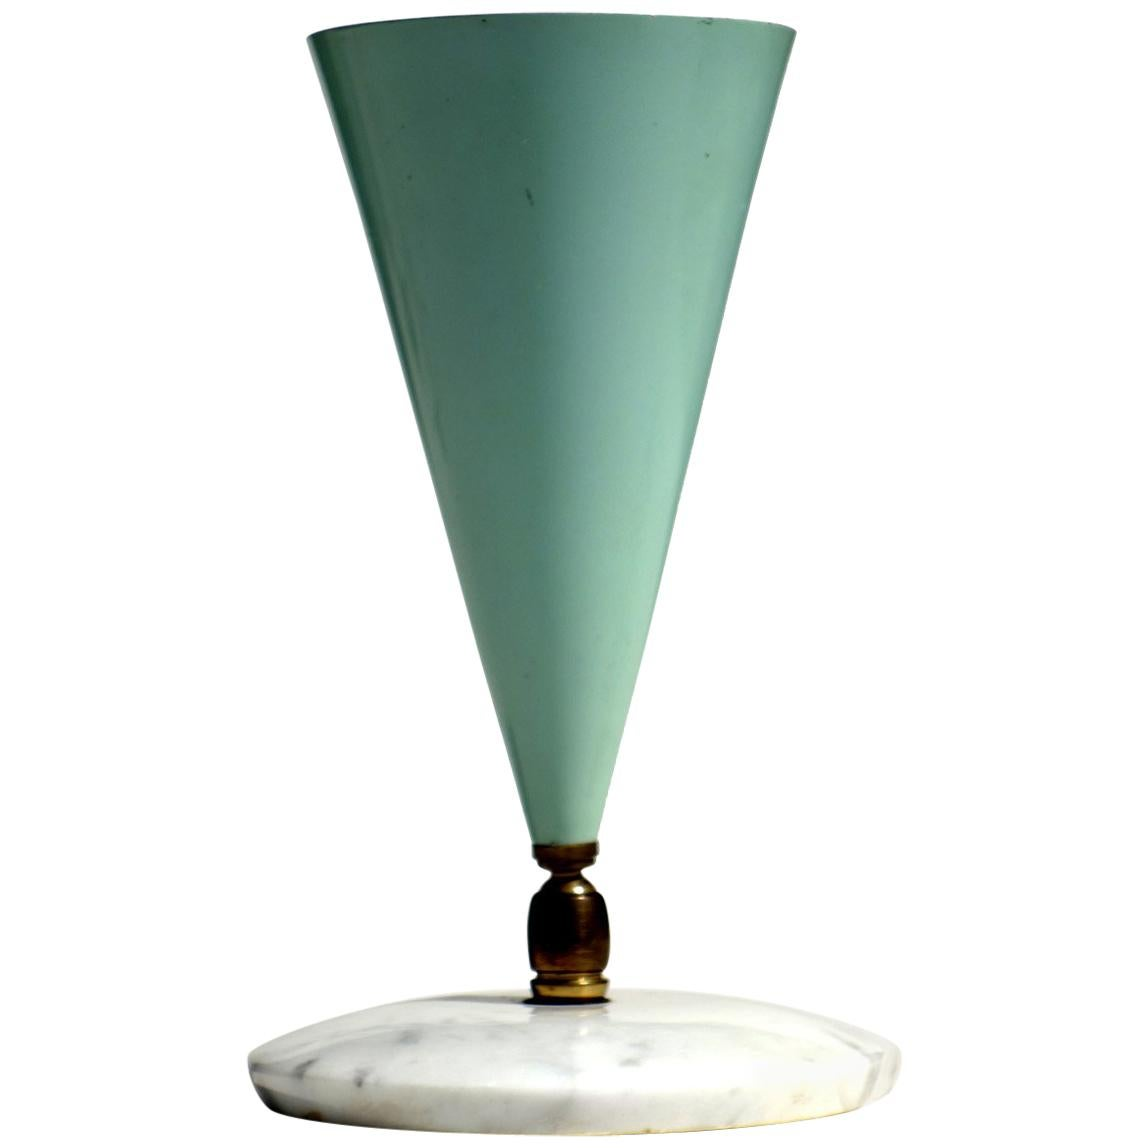 1950s by Arrelocuce Italian Midcentury Design Table Lamp